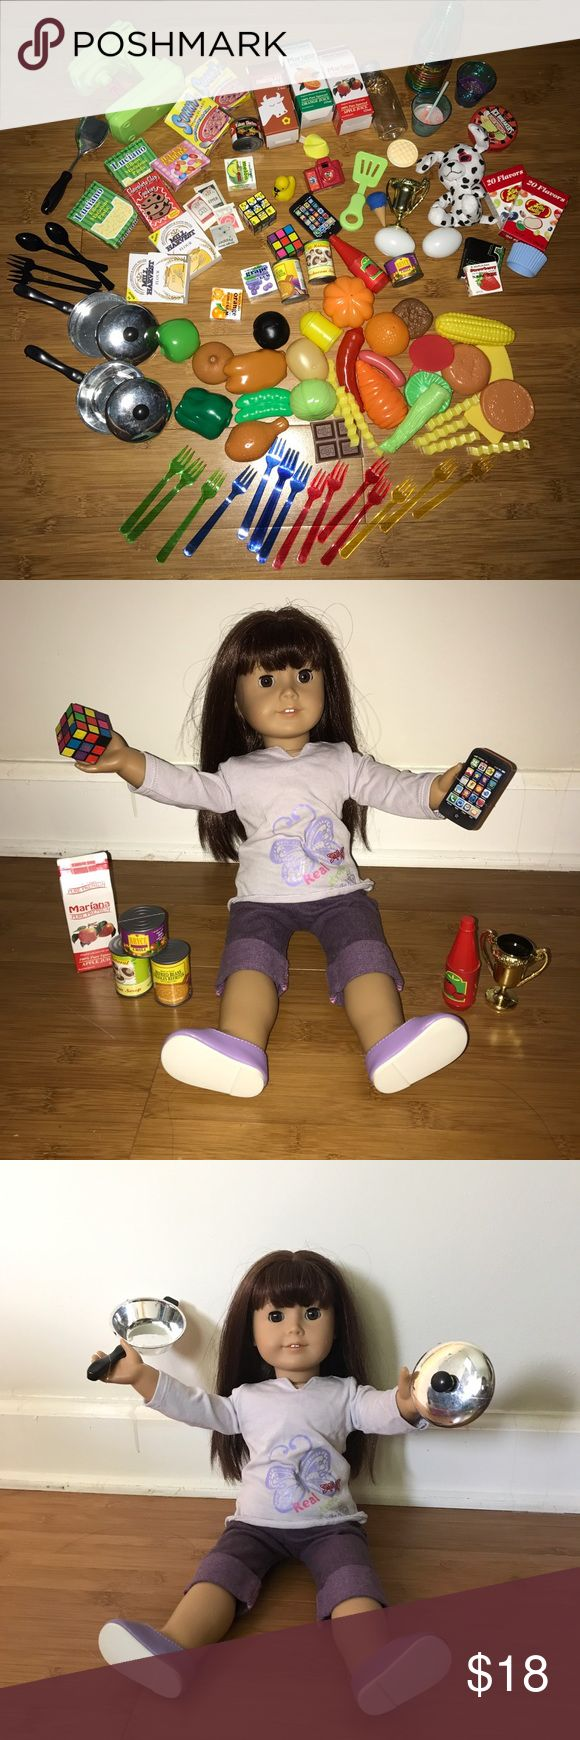 American girl doll kitchen set accessories Selling my collection of American girl doll sized accessories and toys. Adorable accessories and doll sized food and kitchen items. Works for any 18 inch doll. Selling from a smoke free, pet free home. (Brand is used for exposure) DOLL NOT INCLUDED ⭐️ FOR LOWER ITEM PRICES AND SHIPPING PRICES BUY ON MY MERCARI! (shop.sherri) ⭐️ Tags: Pink, American girl, our generation, clothes, accessories, 18 inch, hand sewn american girl Other